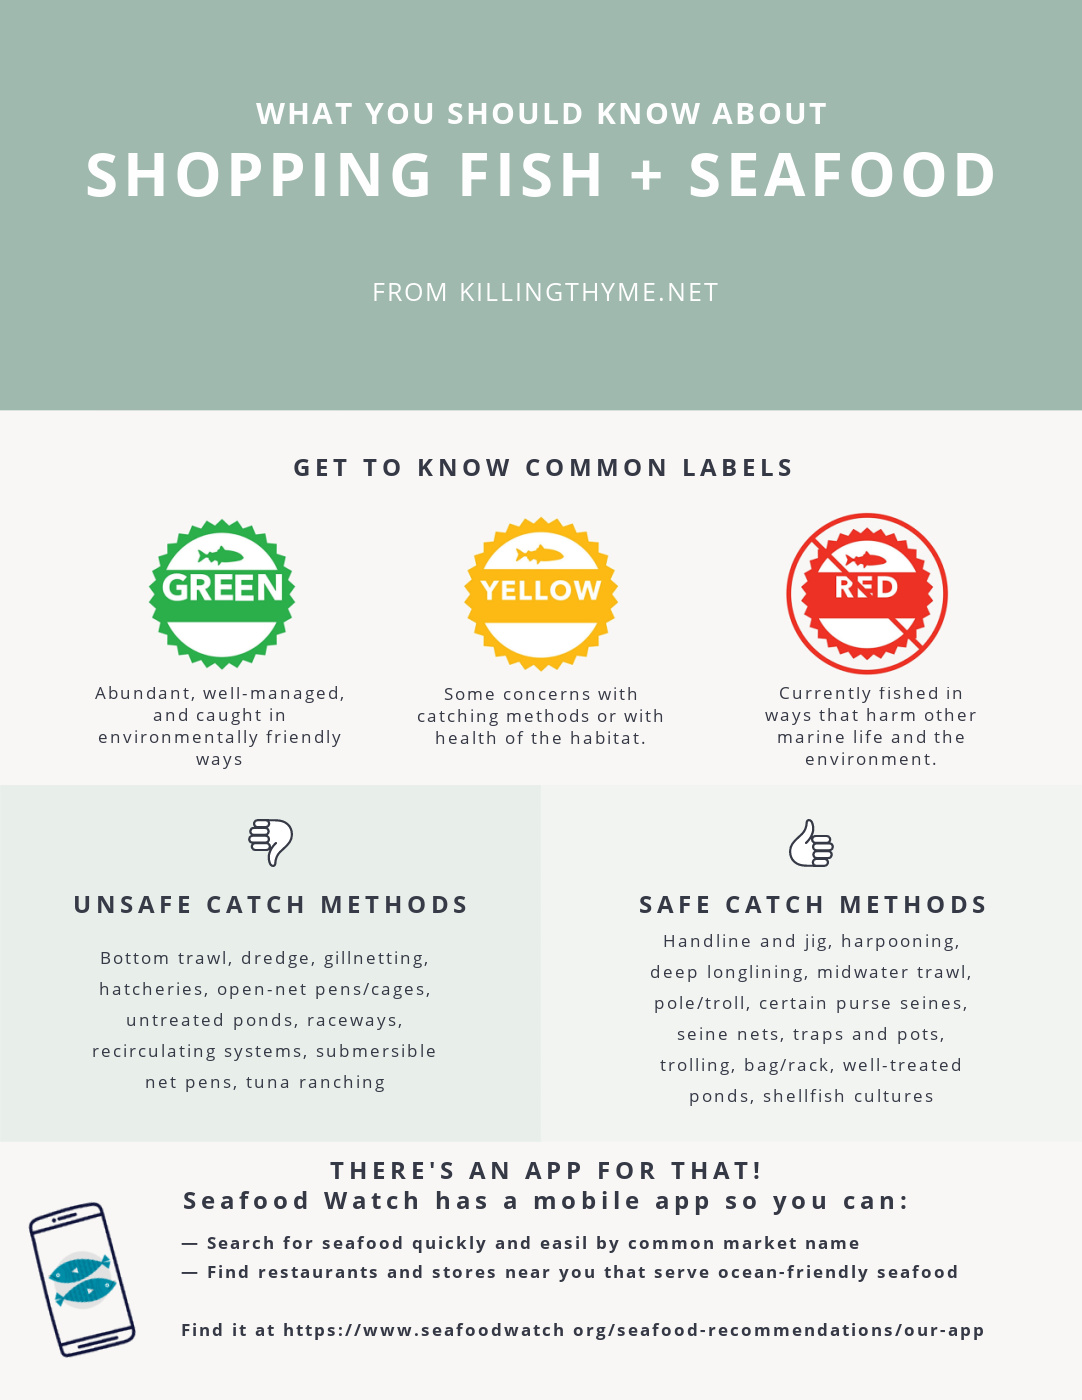 Infographic for shopping seafood.